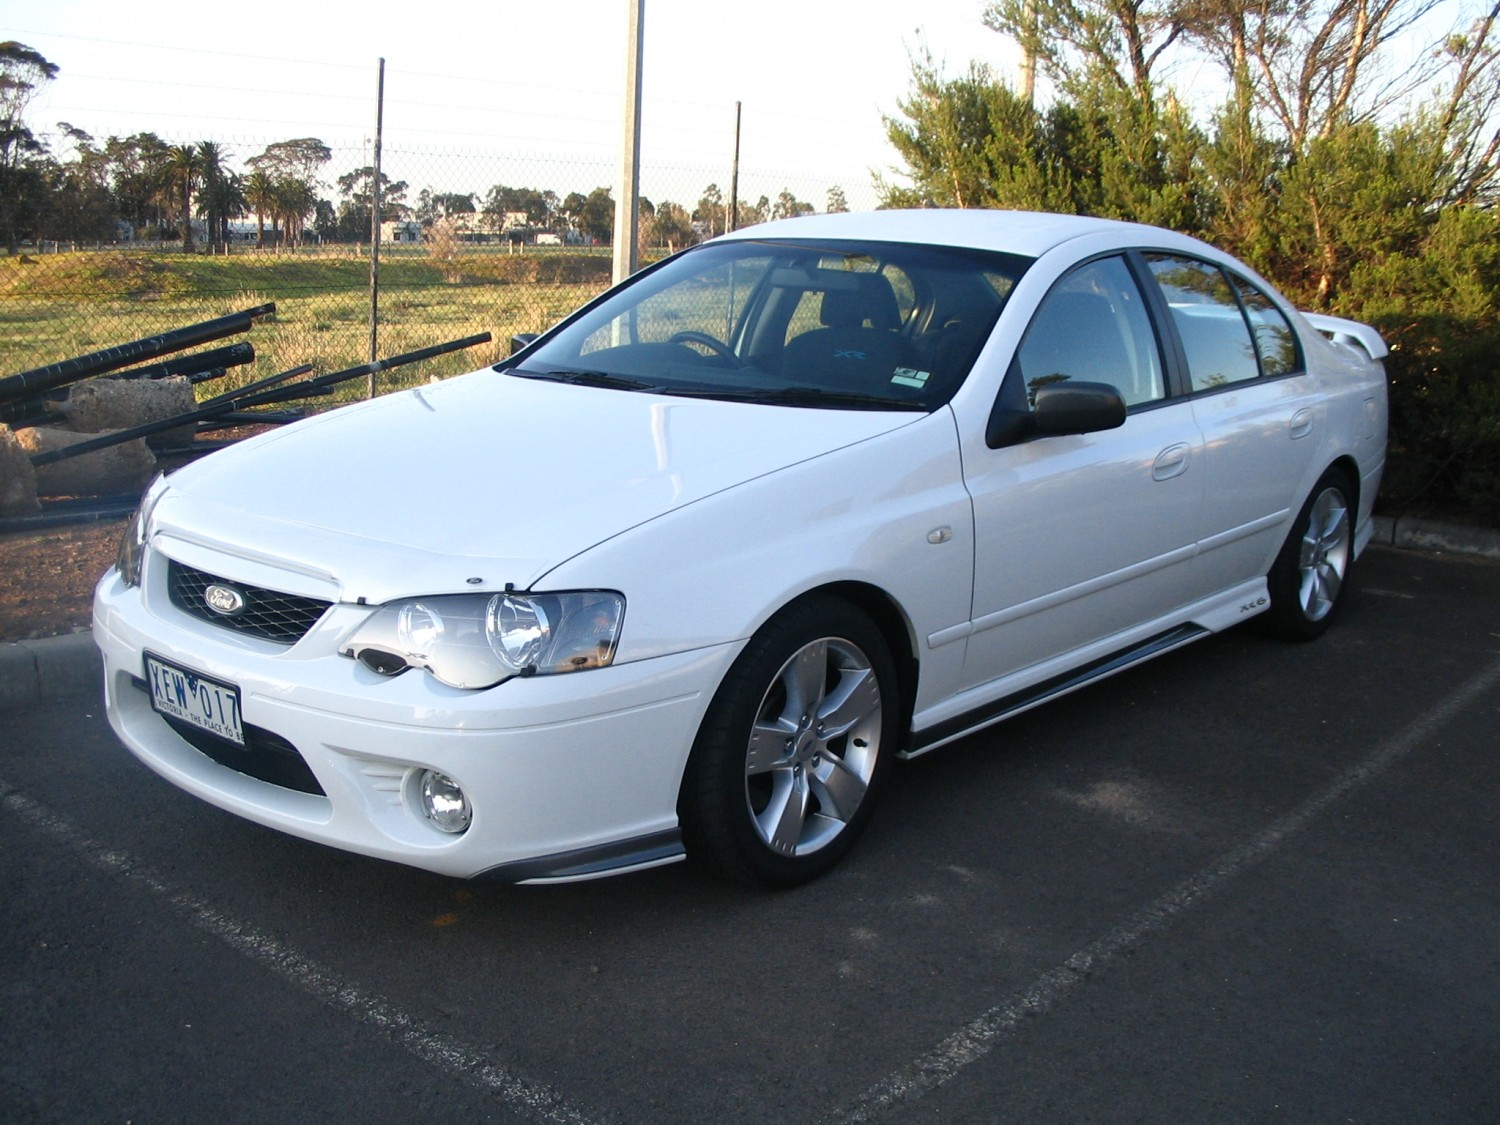 2007 Ford Falcon BF MkII Upgrade XR6 Turbo Police Package